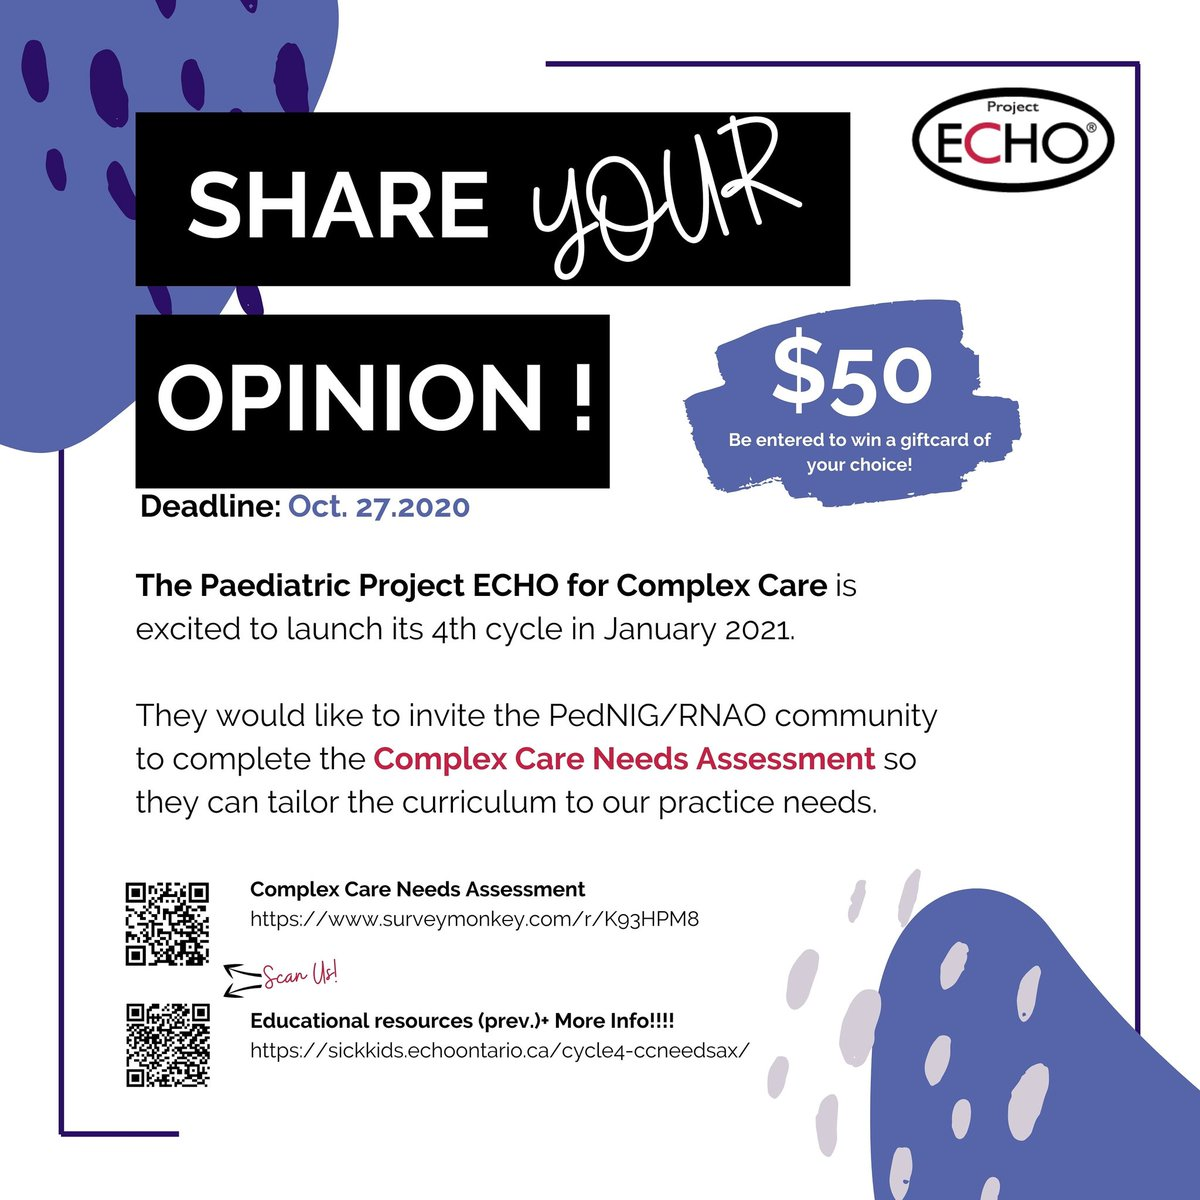 Our friends over at The Paediatrics Project ECHO for Complex Care are going to be launching their 4th cycle in Jan 2021.    THEY NEED OUR HELP!  By the end of Oct.27.2020 they would like YOU to share your opinion!!!  #paediatrics #complexcare #Opinion https://t.co/IWkwRc03bv